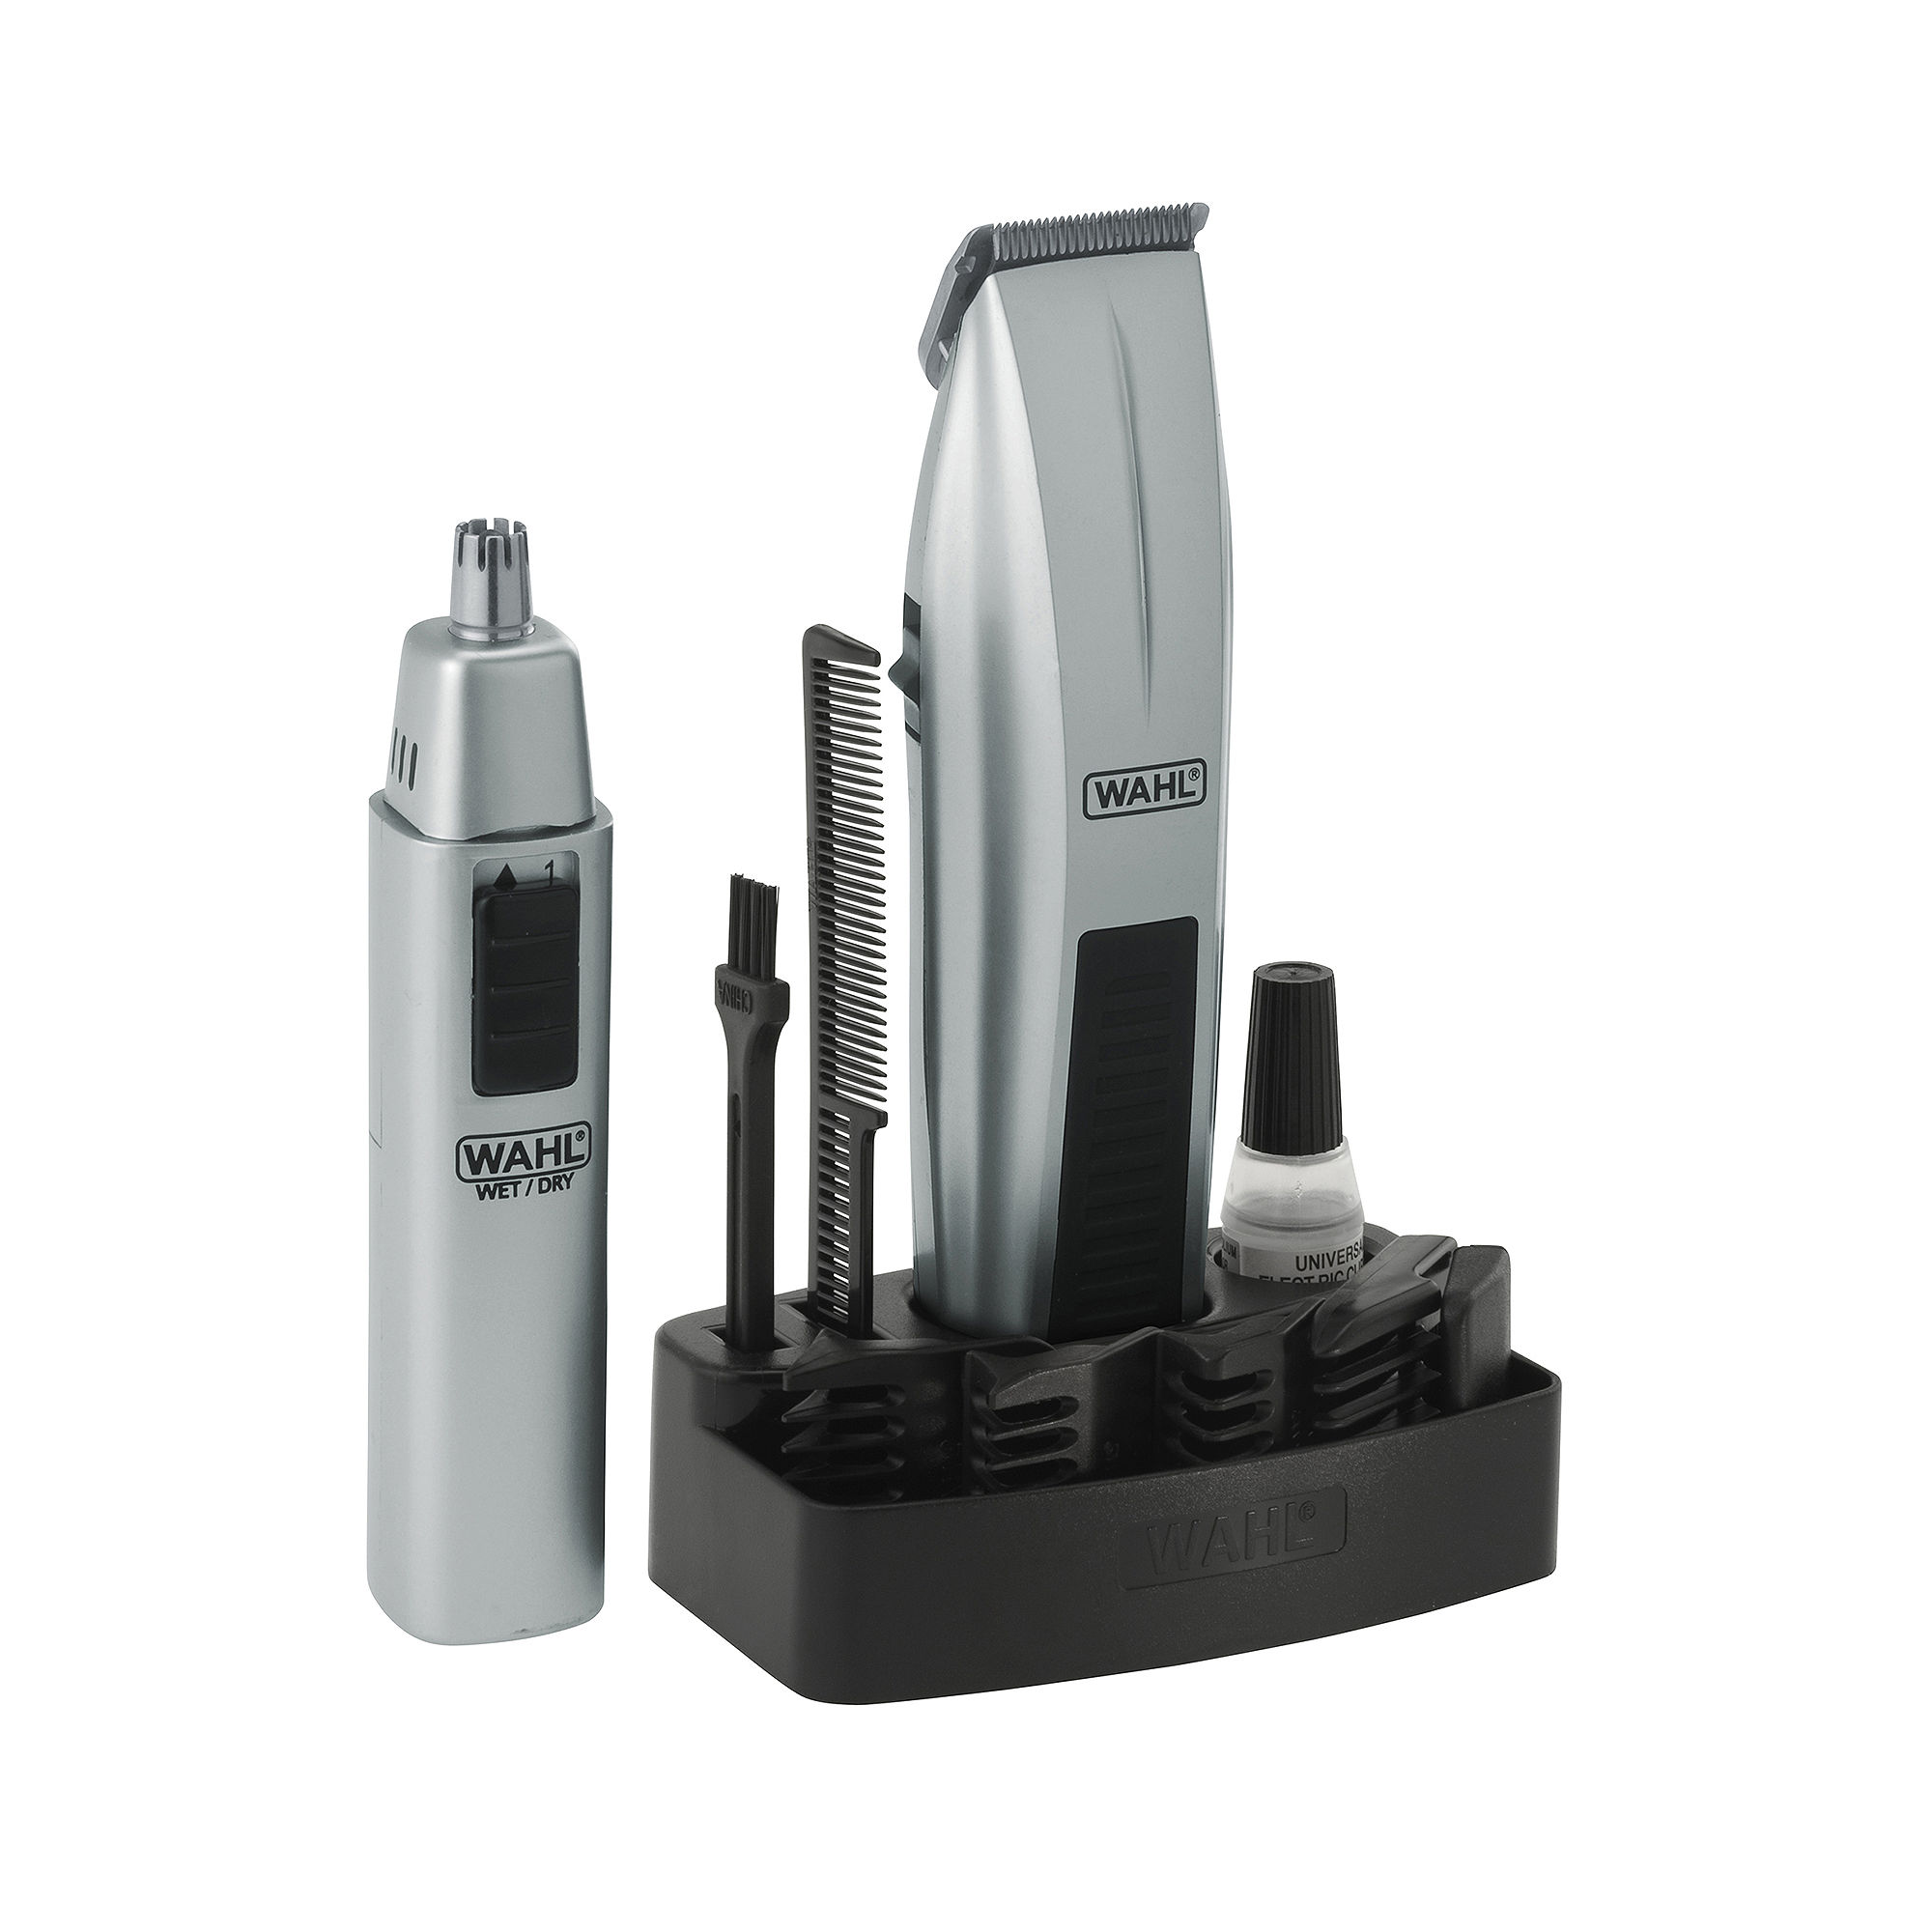 Wahl Mustache & Beard Trimmer